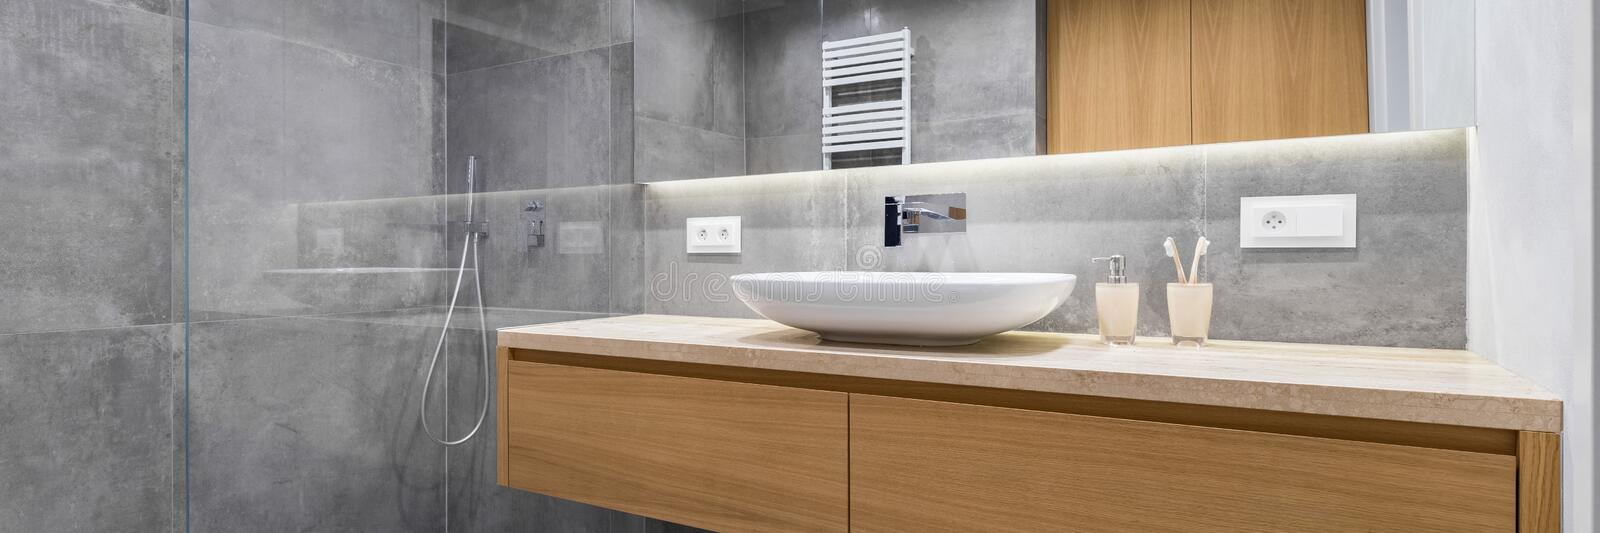 Bathroom with shower and mirror stock images